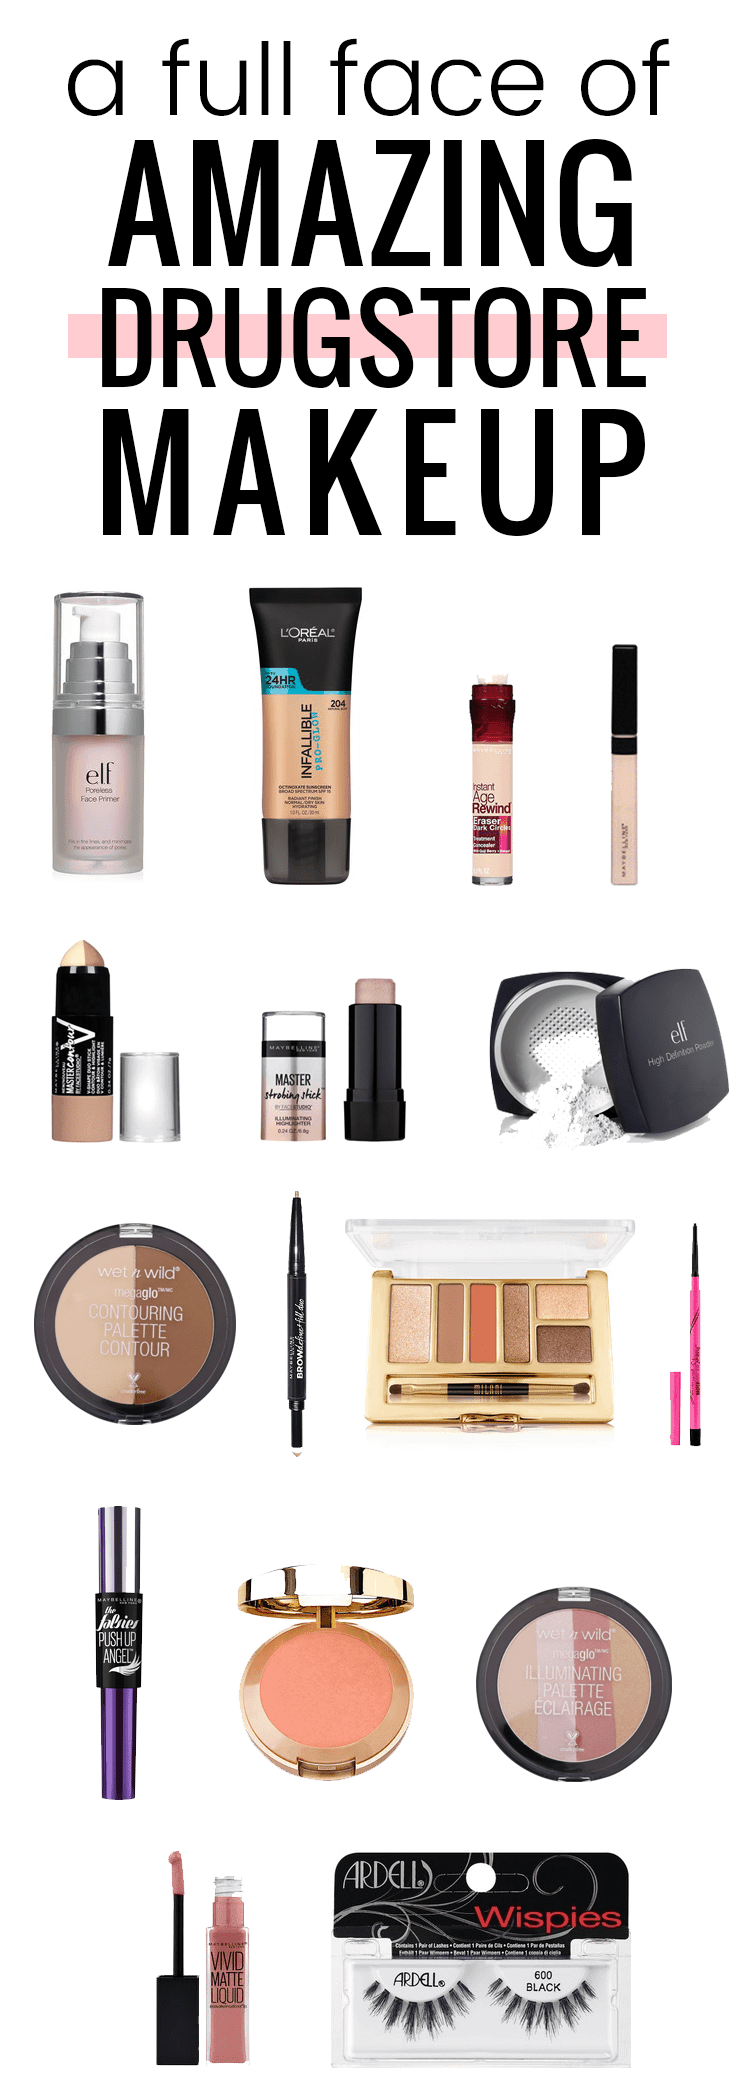 Things Needed For Full Face Makeup